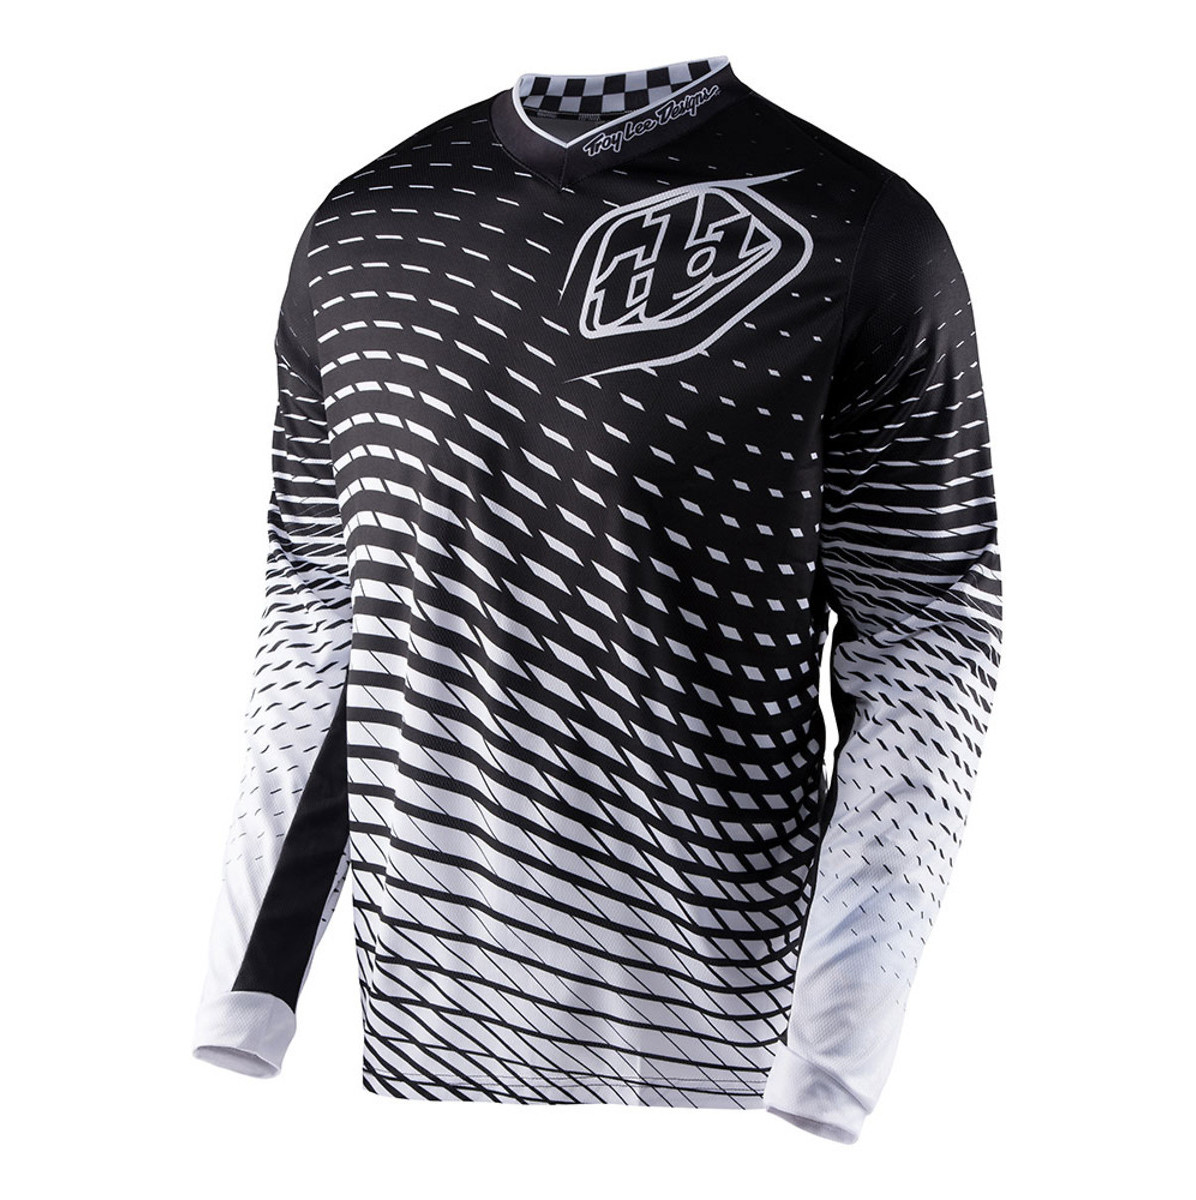 Troy Lee Designs GP Tremor Jersey Troy Lee Designs GP Tremor Black and White